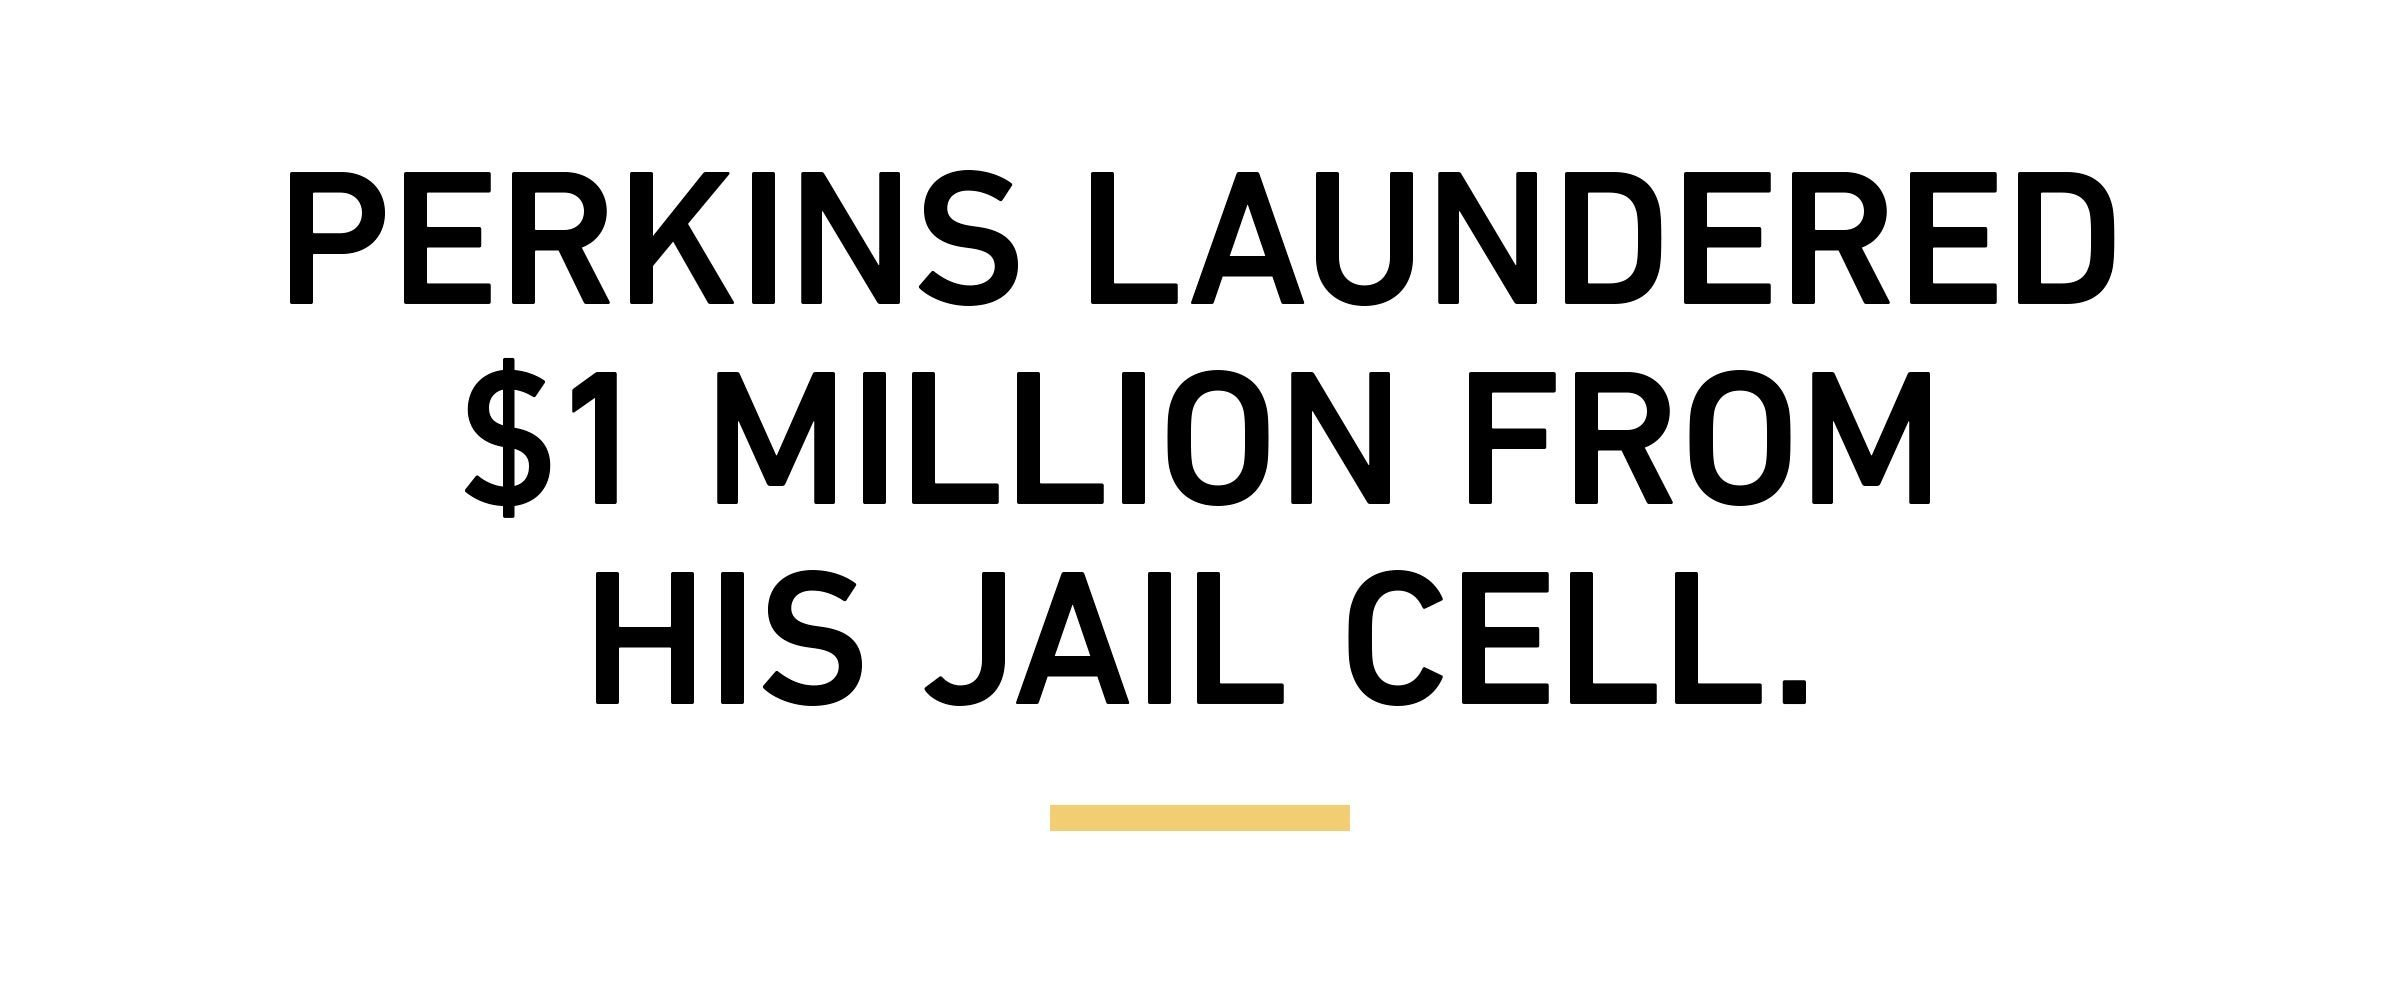 Perkins laundered $1 million from his jail cell.